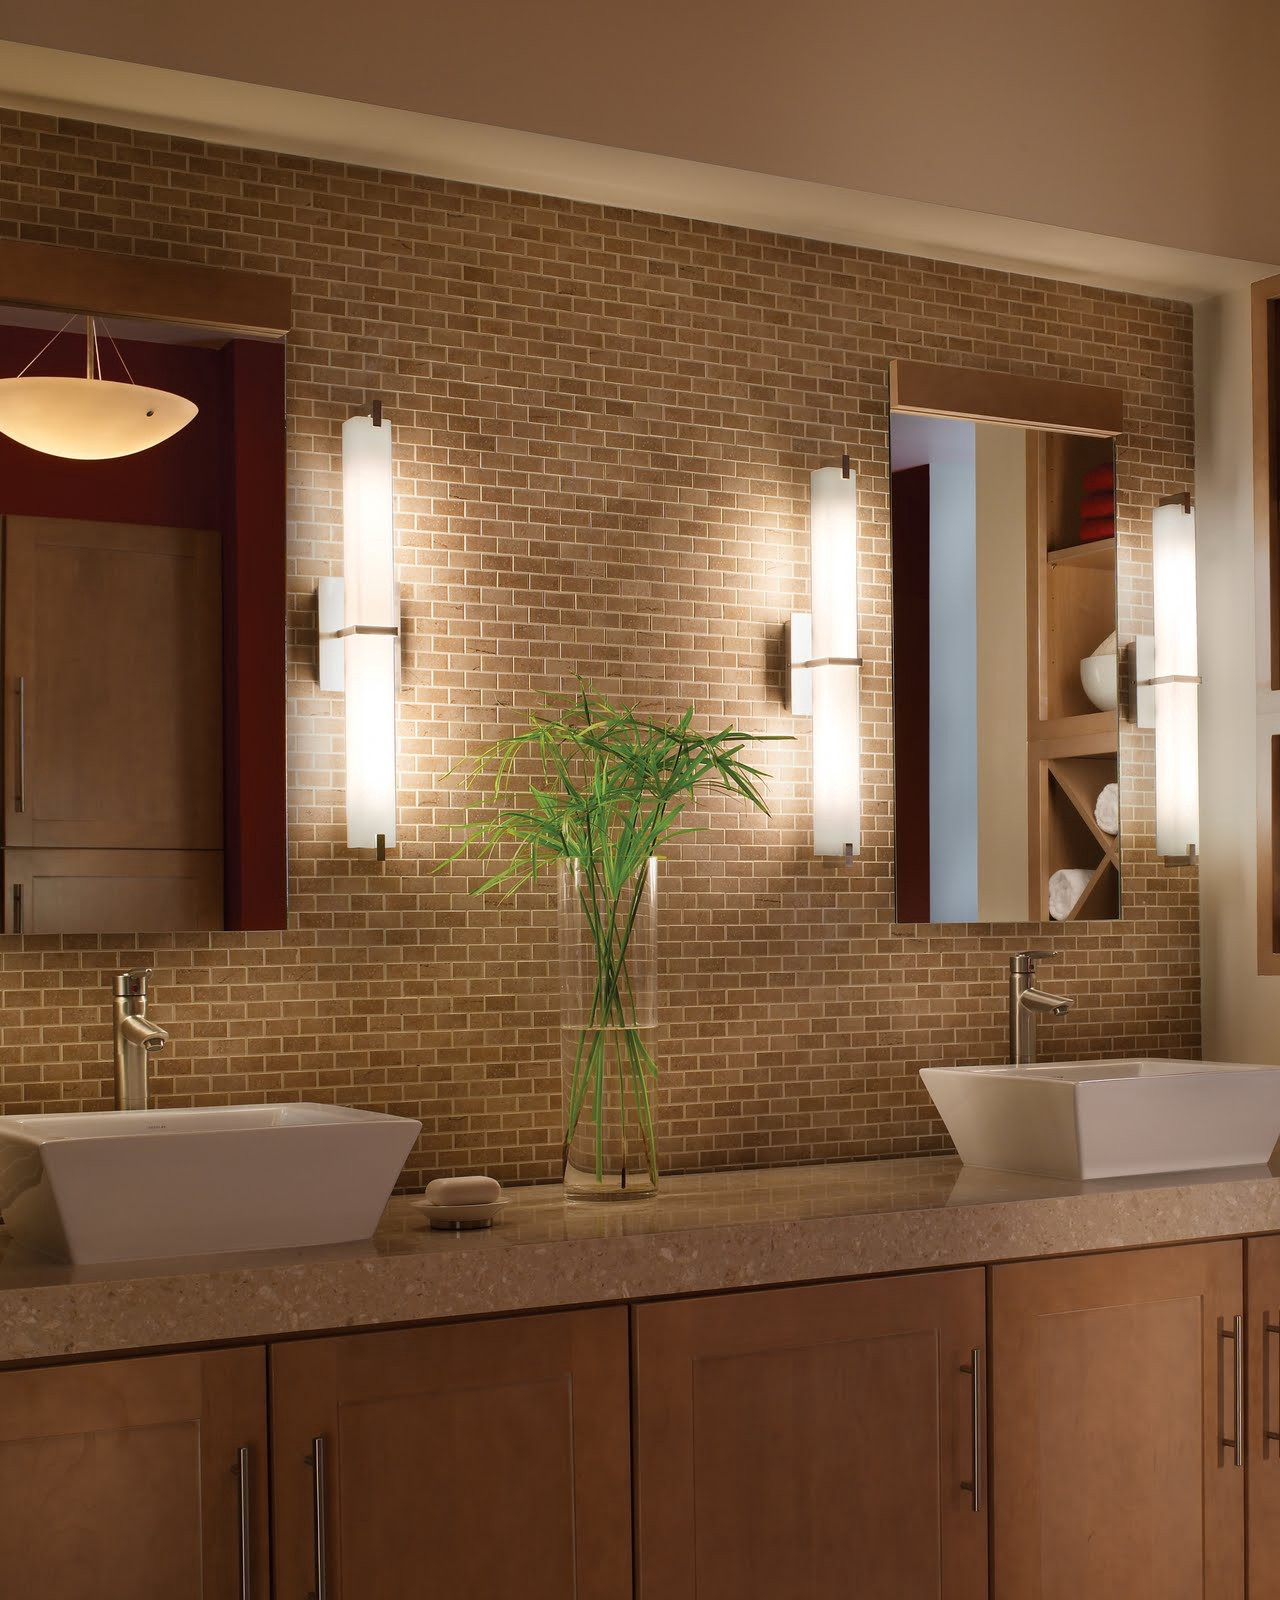 147 Bathroom Lighting Ideas To Add A Dreamy Touch To Your Space 6 Pradehome Com